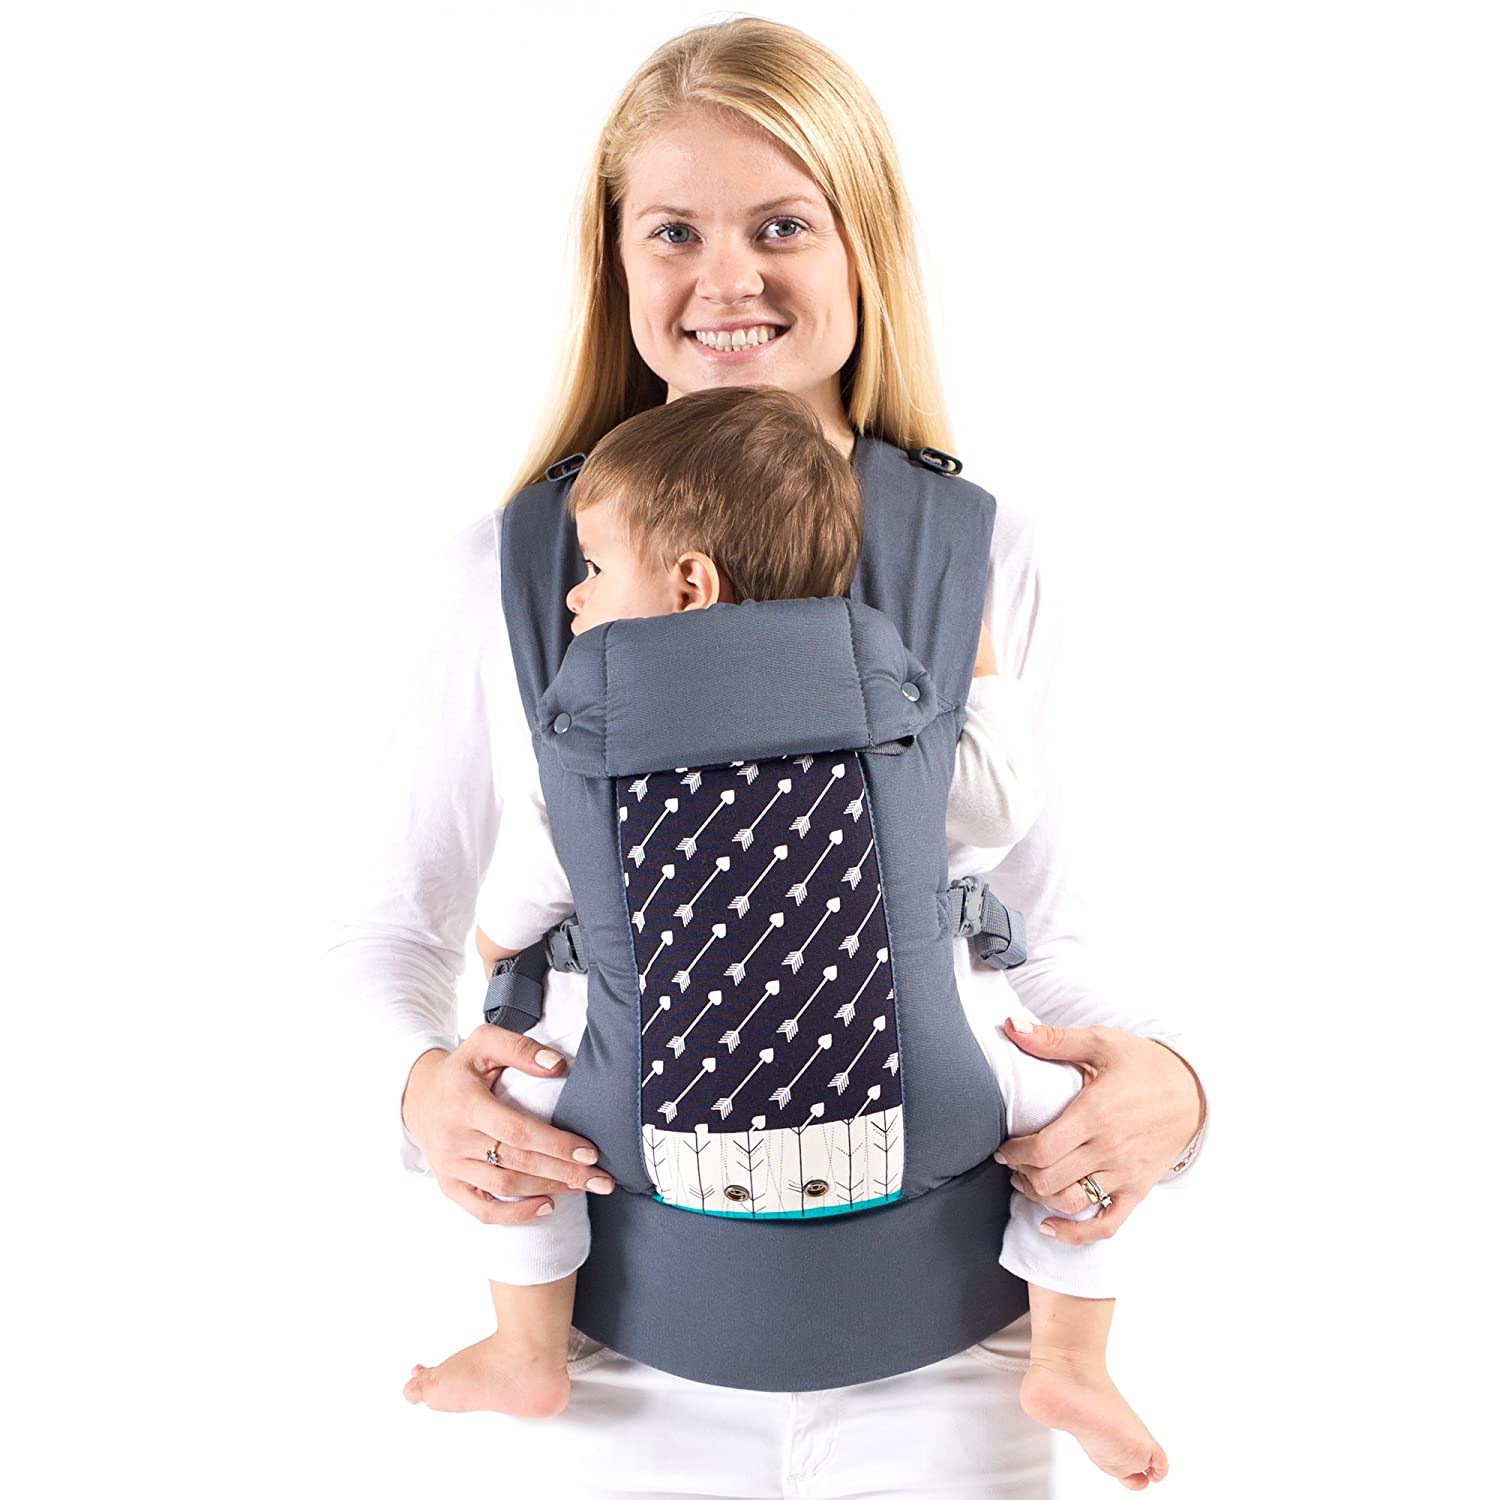 Amazon.com: Gemini Performance Baby Carrier by Beco ...